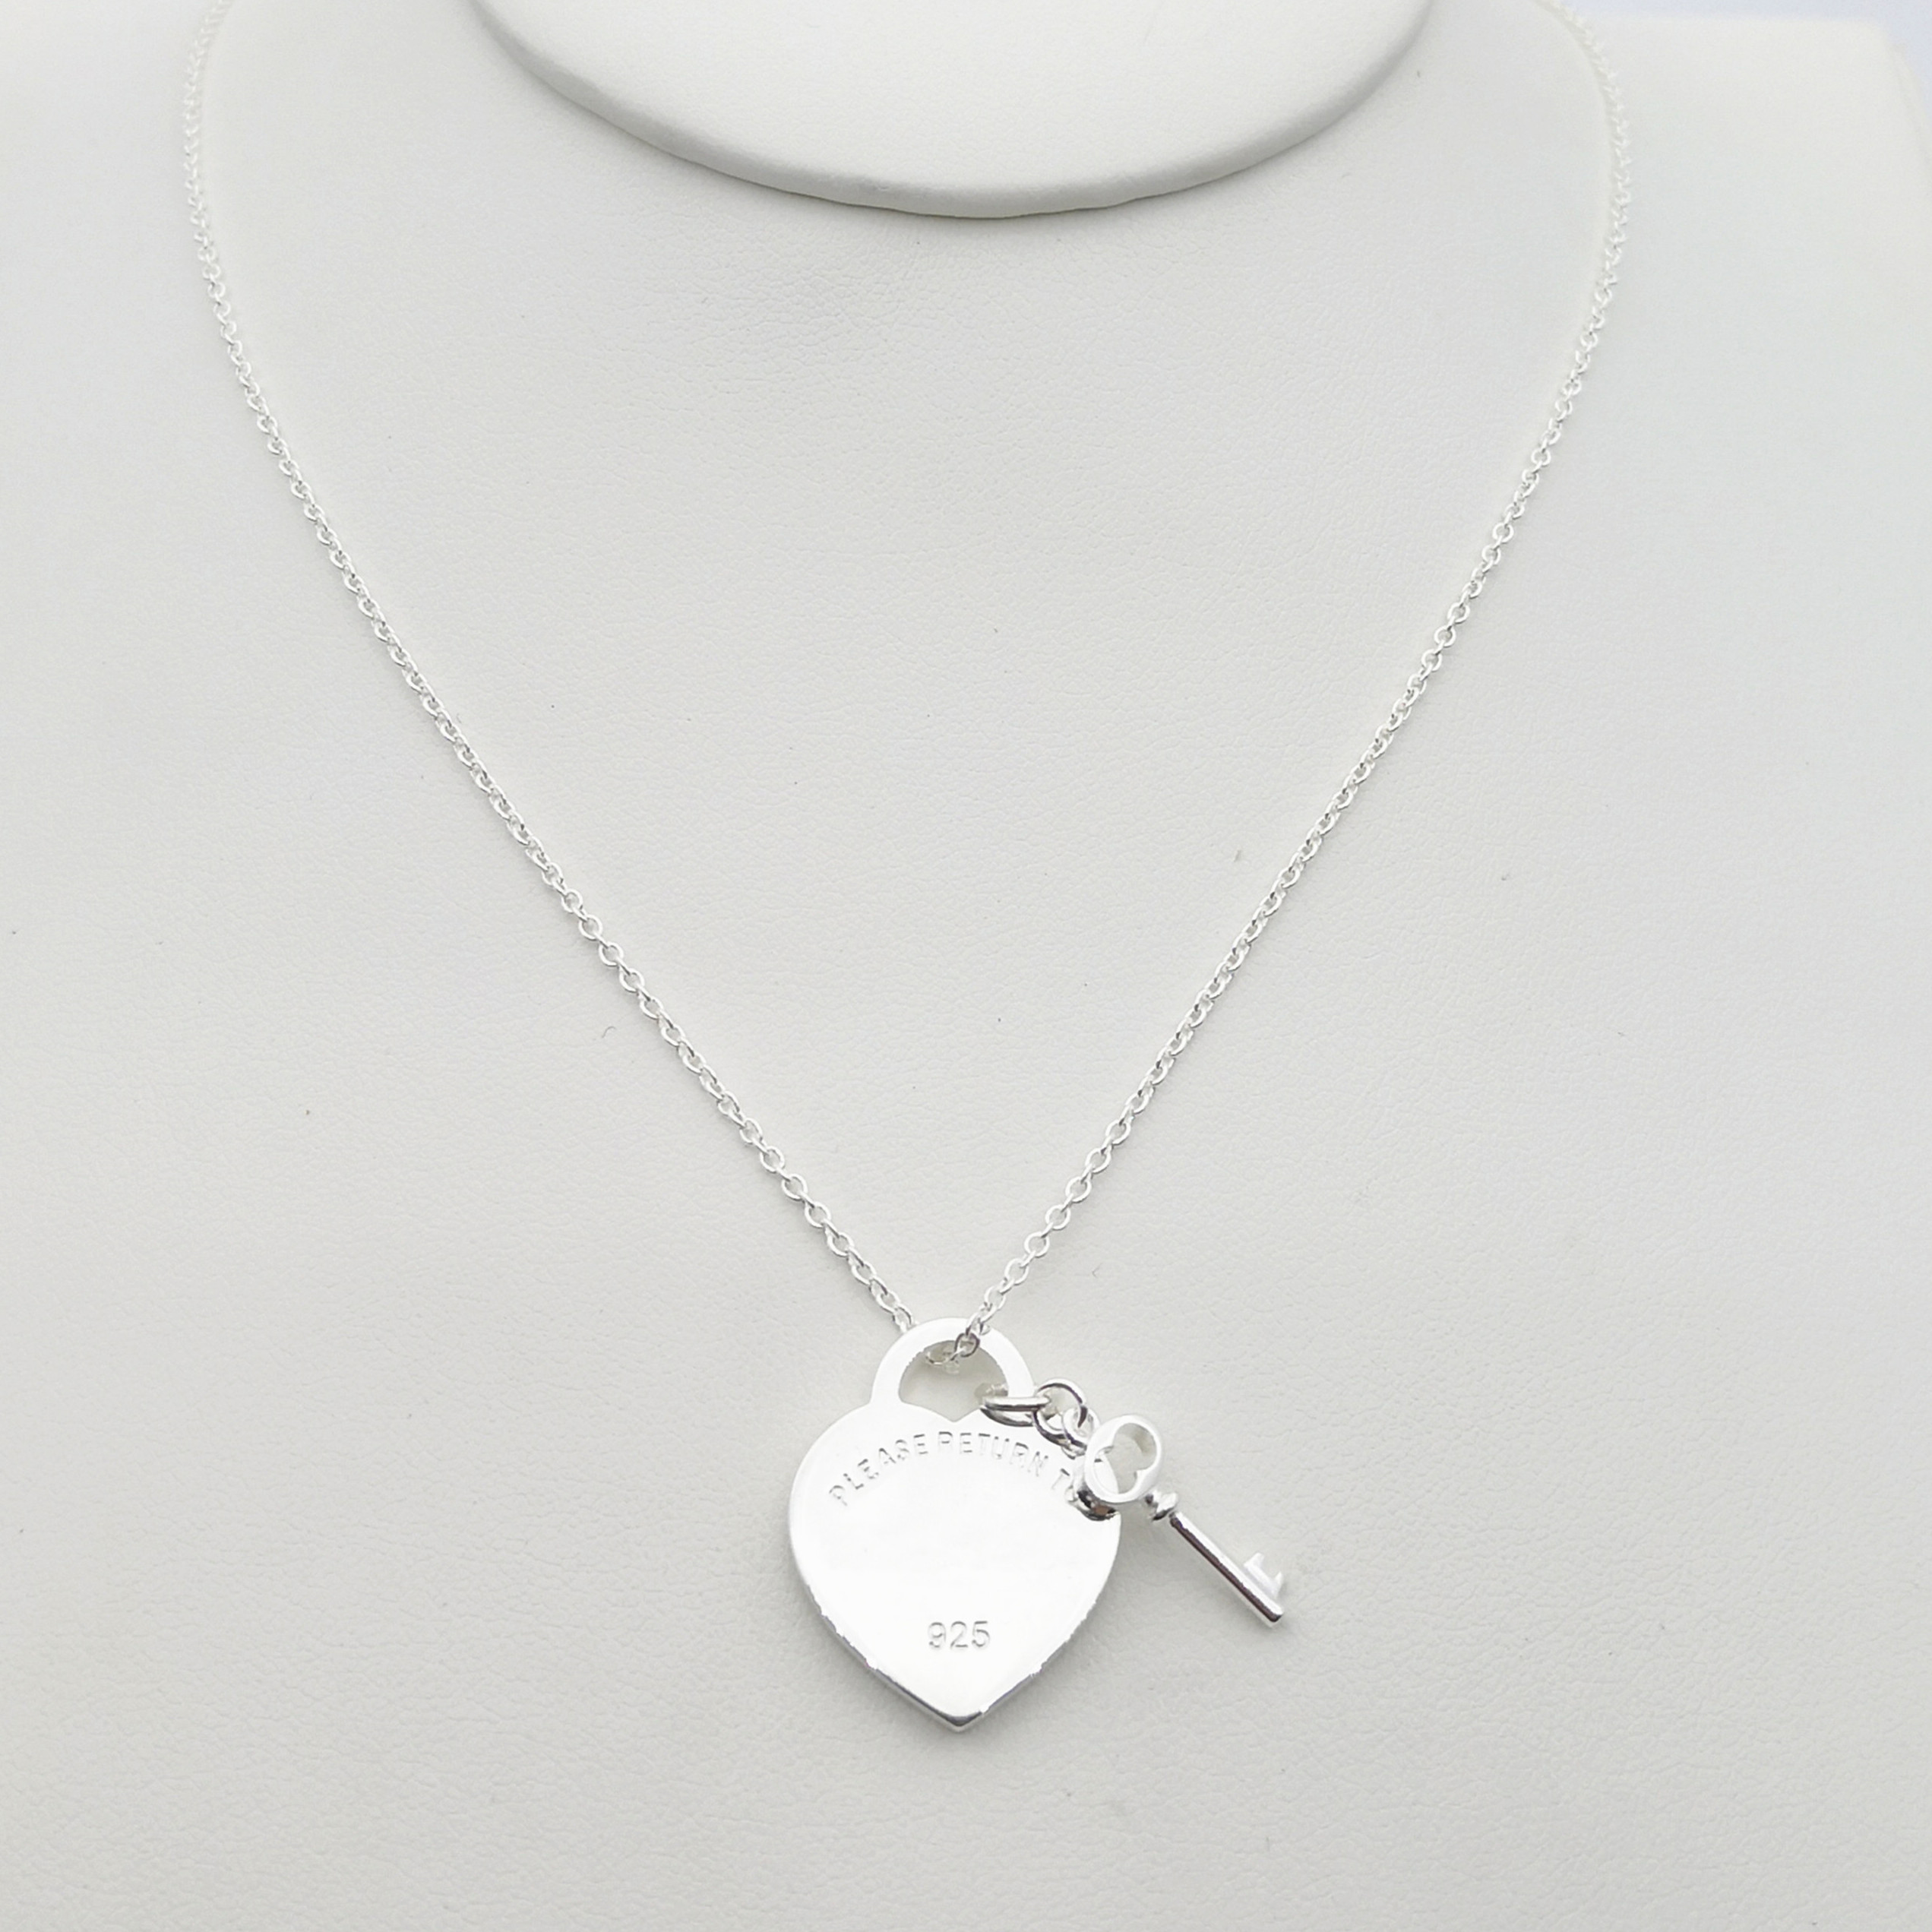 Pendant Necklace Jewelry Silver-Key Heart-Shaped 1:1-Sterling-Silver Gift Popular 925